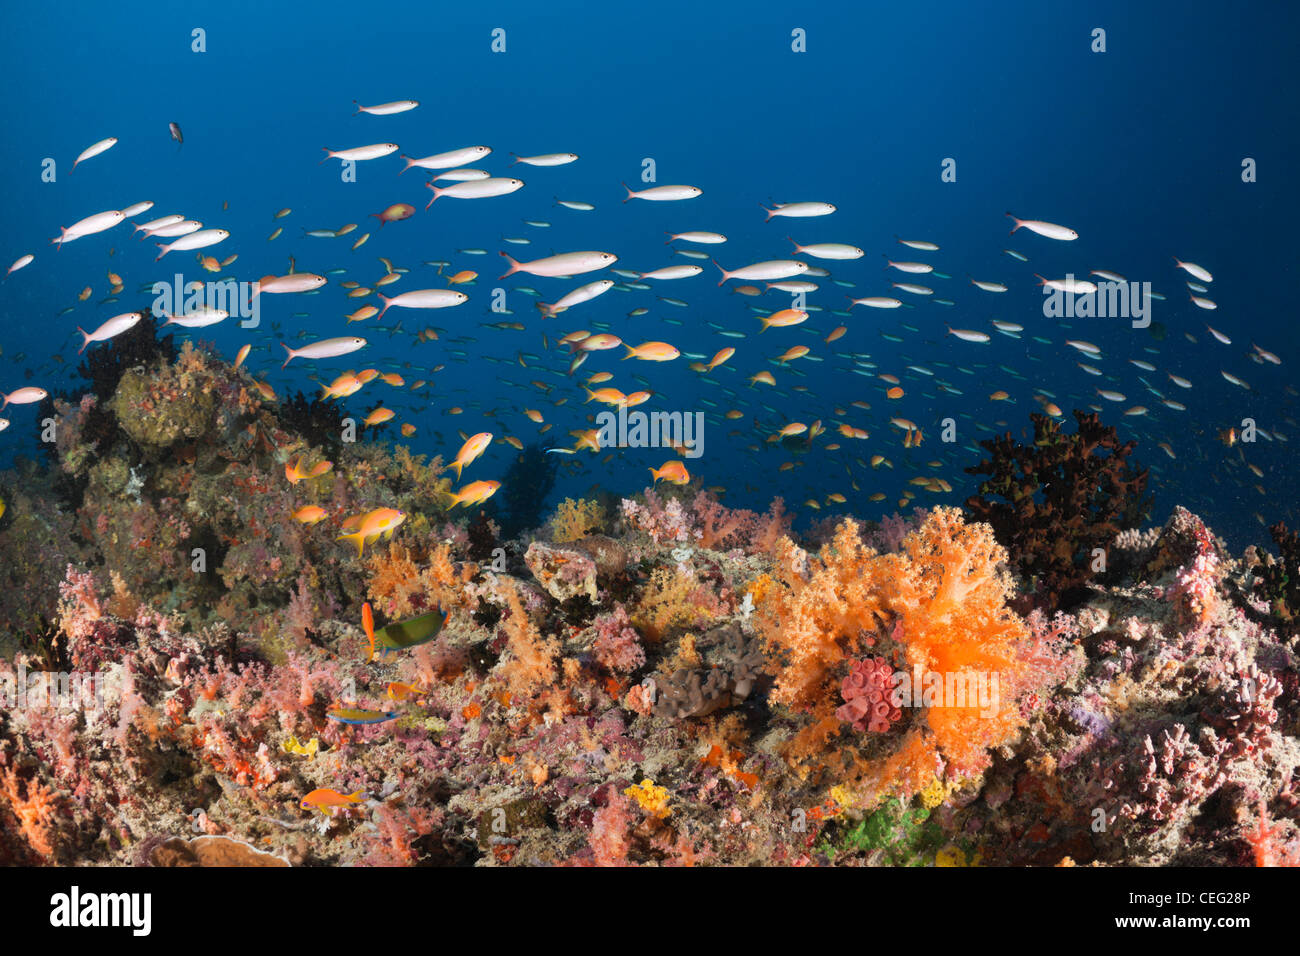 Coral Fishes over Soft Coral Reef, North Male Atoll, Indian Ocean, Maldives - Stock Image